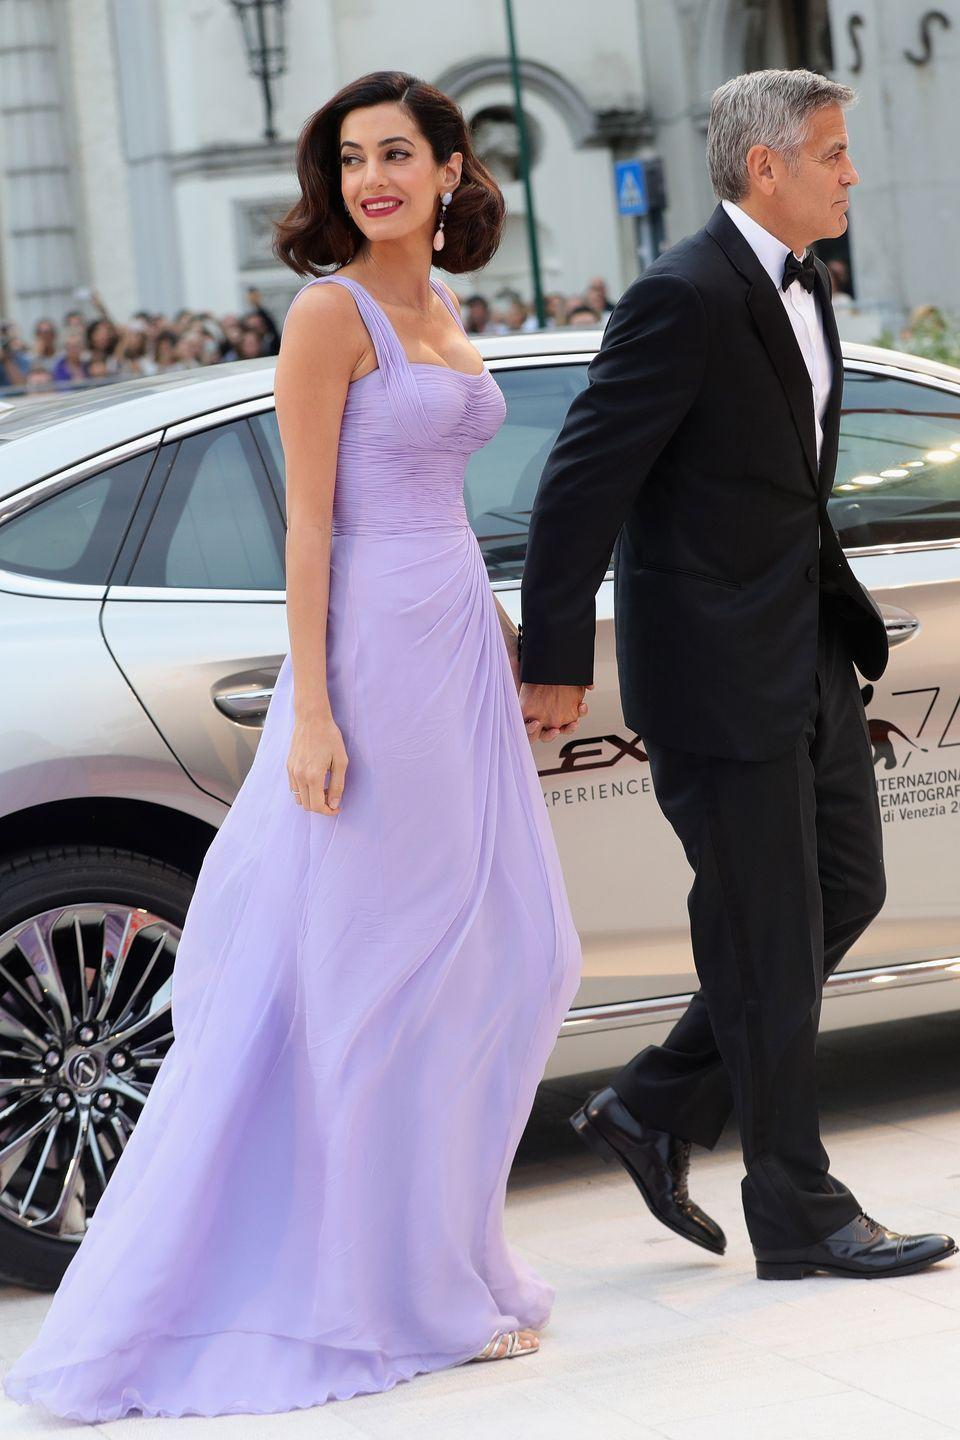 <p>Amal Clooney walked the red carpet at the Venice Film Festival in 2017 wearing a flowing lavender gown by Atelier Versace that immediately reminded us of Meg's signature look.</p>